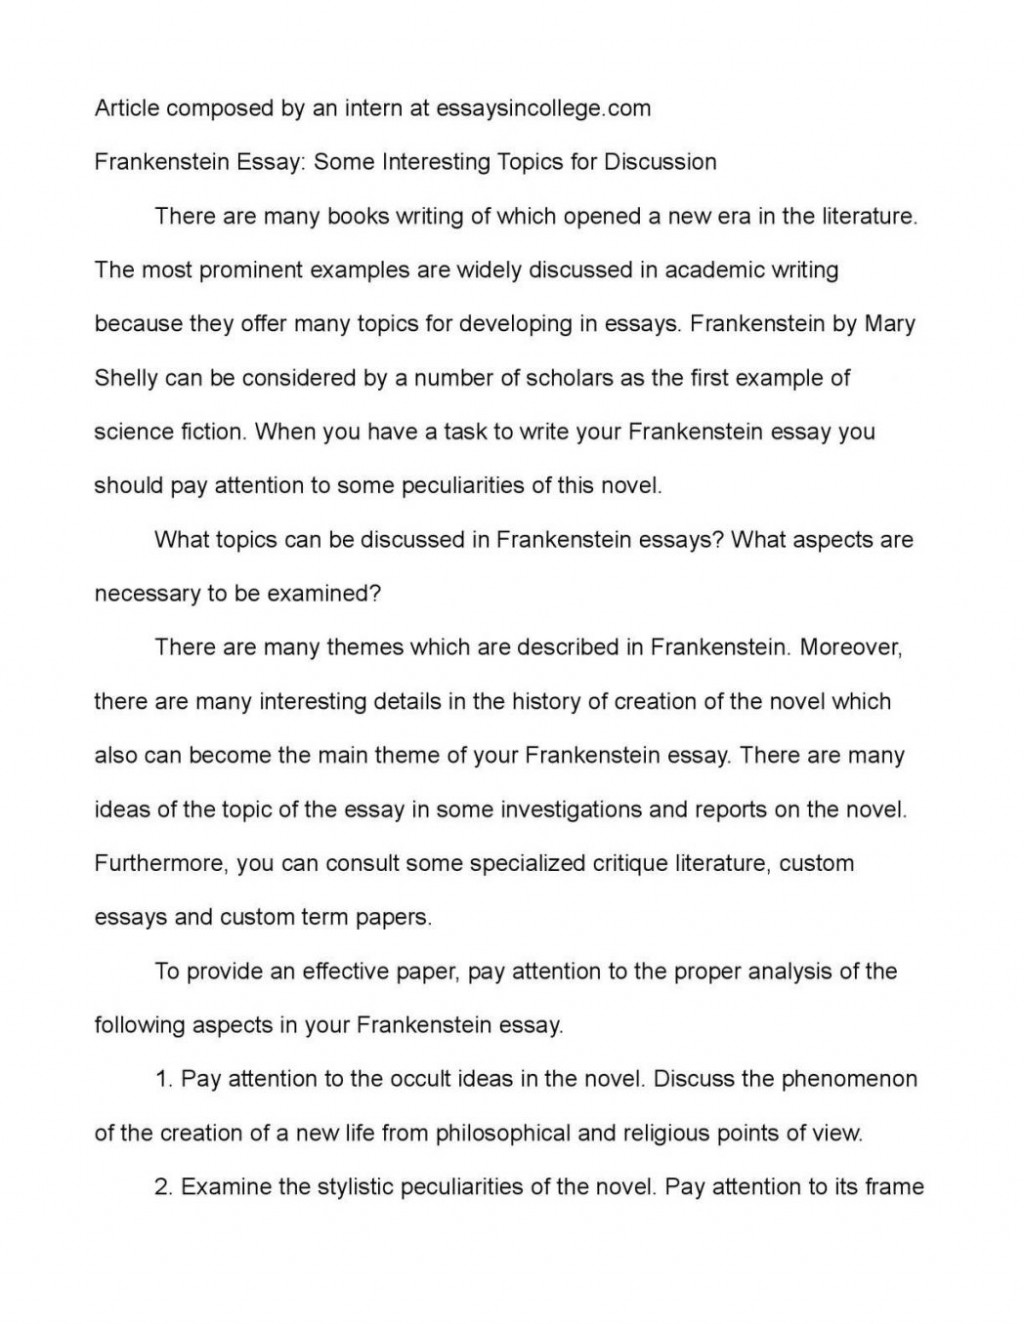 014 Essay Example Religion Resume Science Et An On Newspaper High School Best Argumentative Topics Exa For College Interesting Fun Funny Students Middle Cool Formidable Sociology Of Questions Paper Ideas Introduction Large